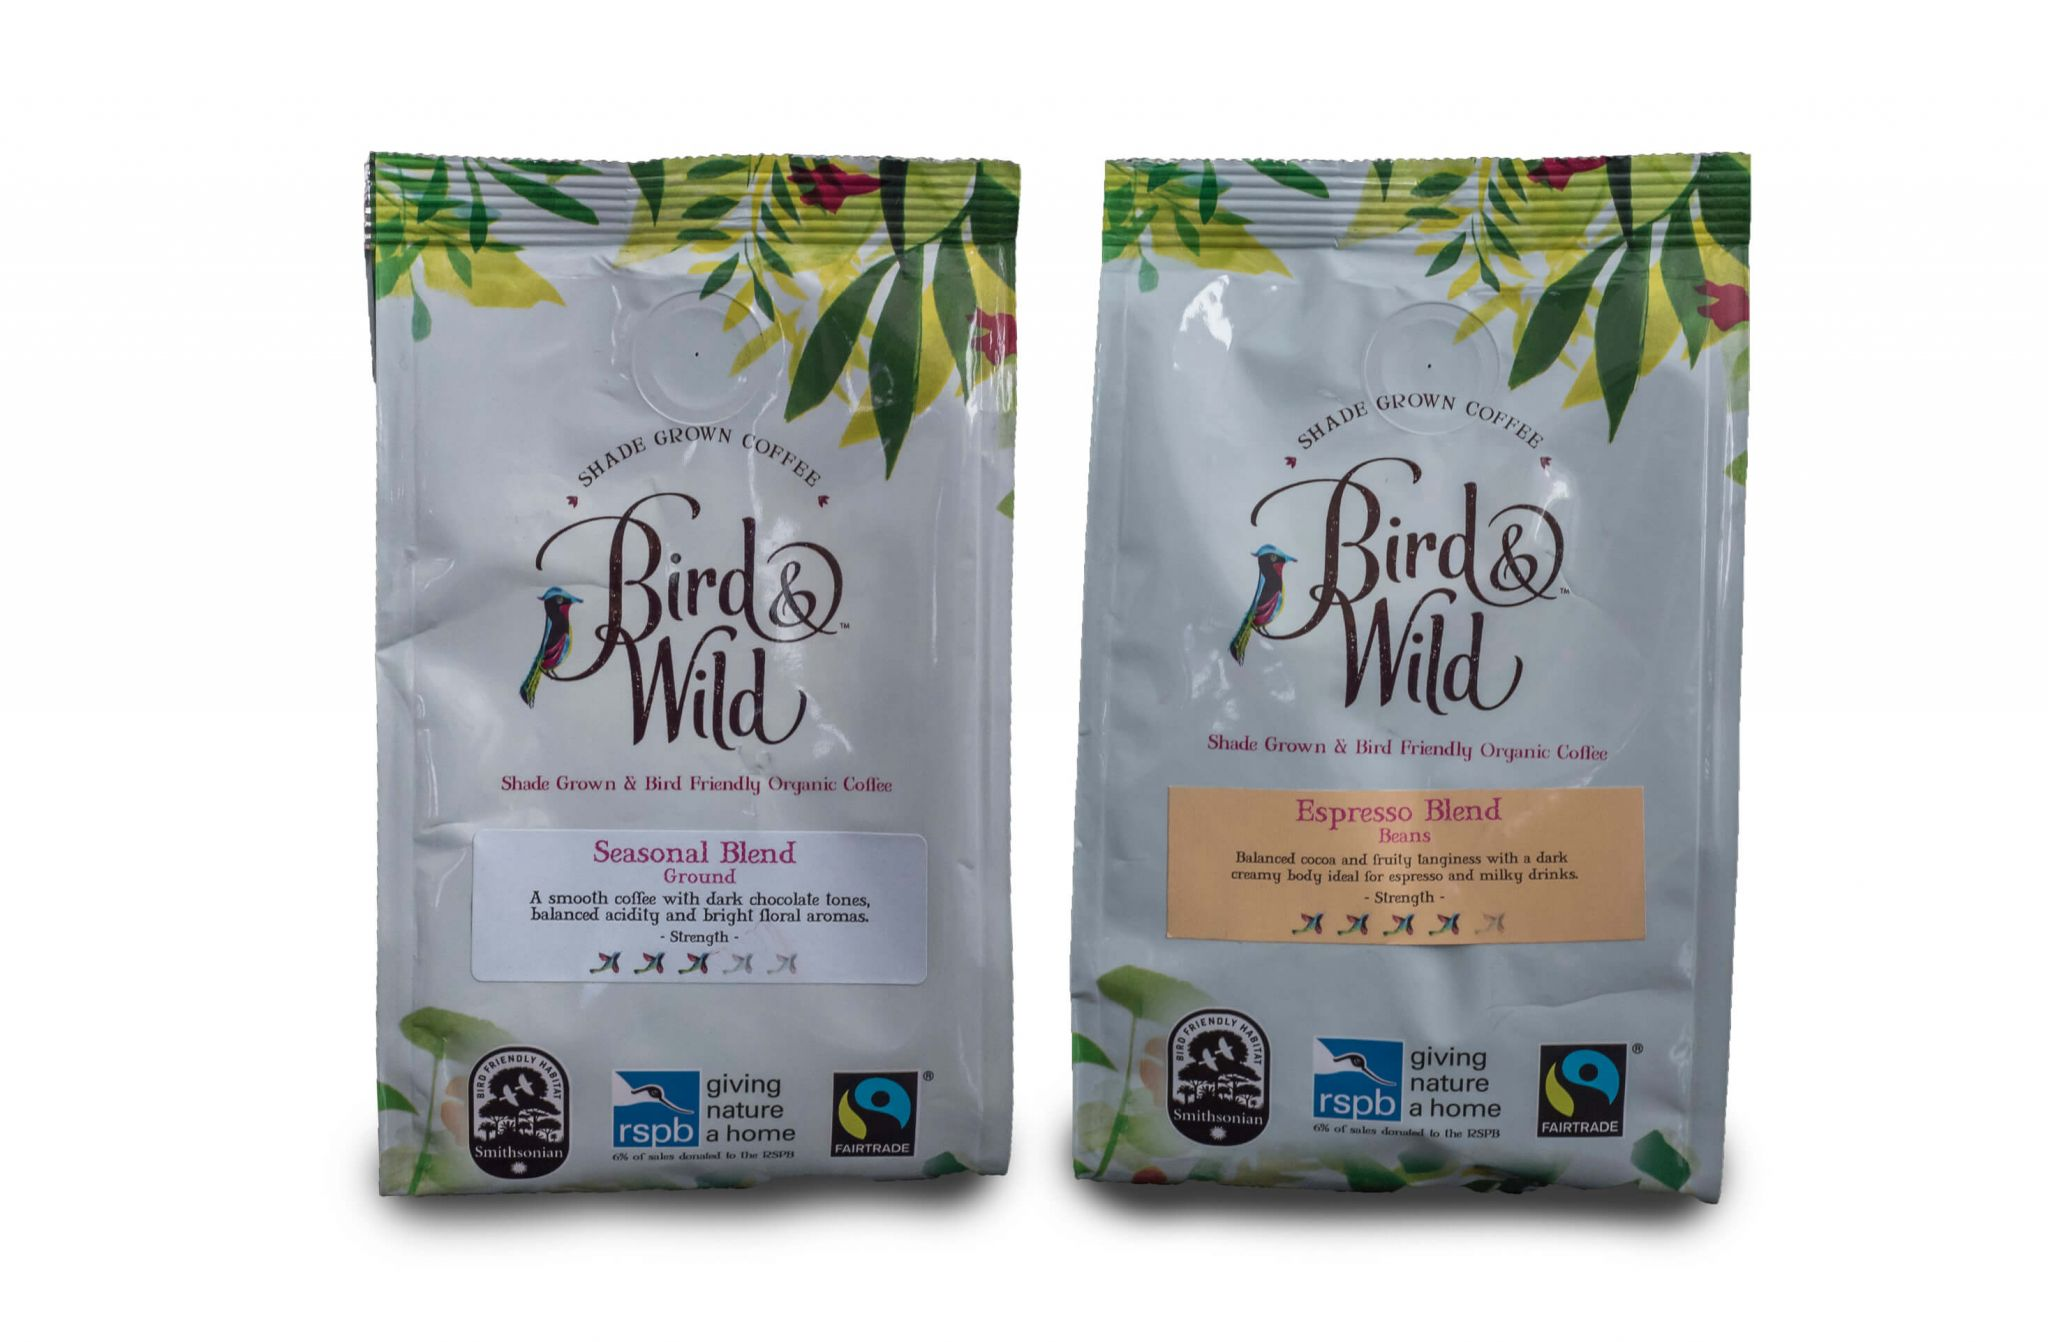 speciality coffees - Bird & Wild Coffee Range